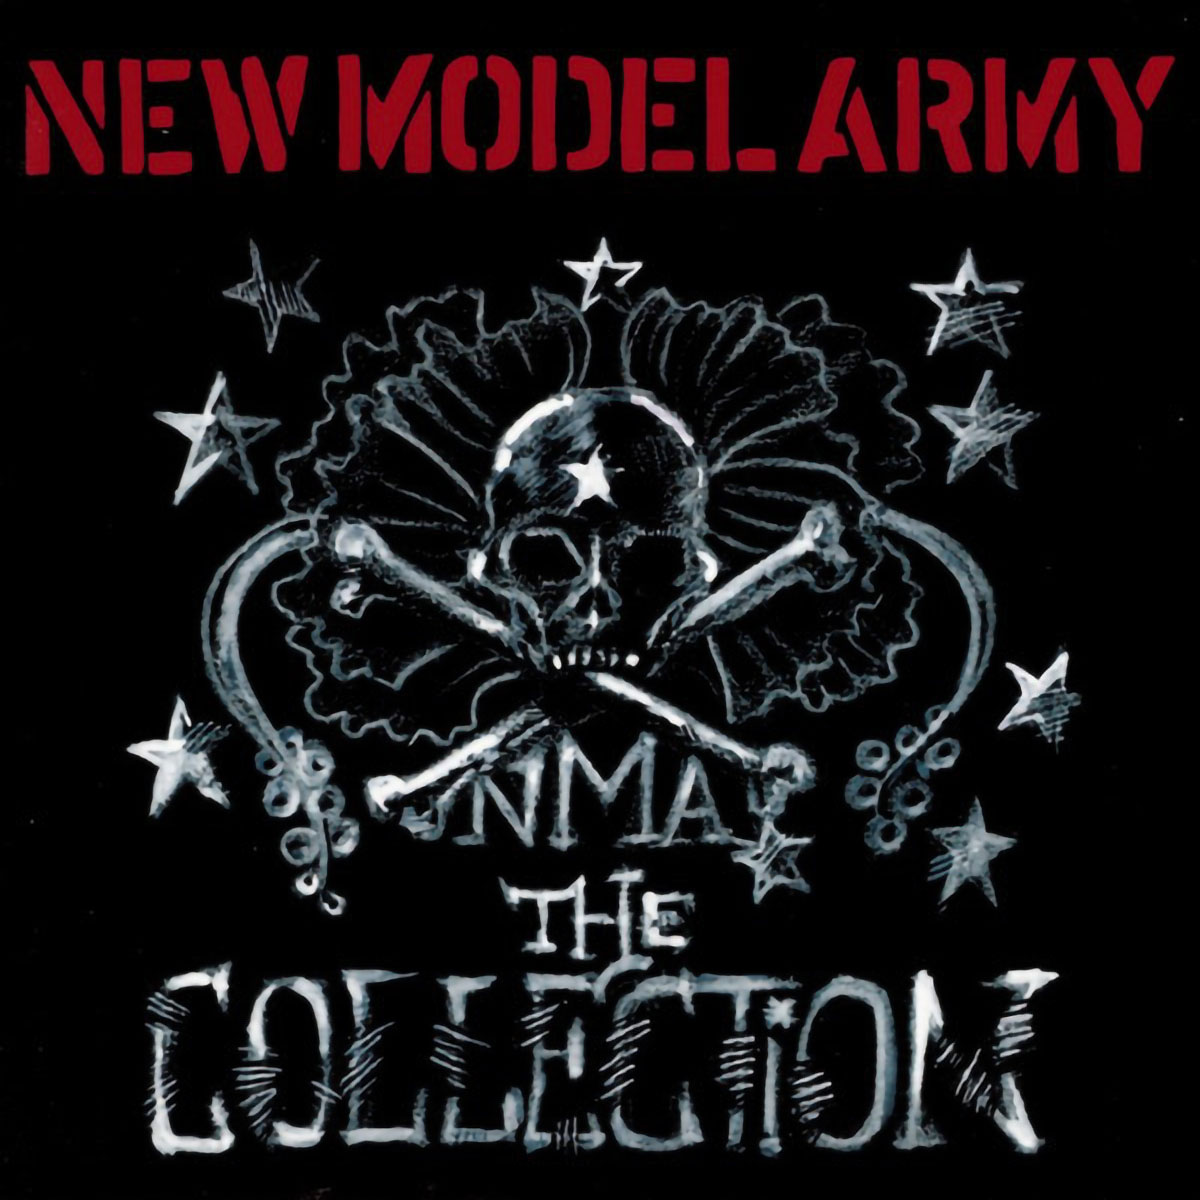 New Model Army - NMA The Collection